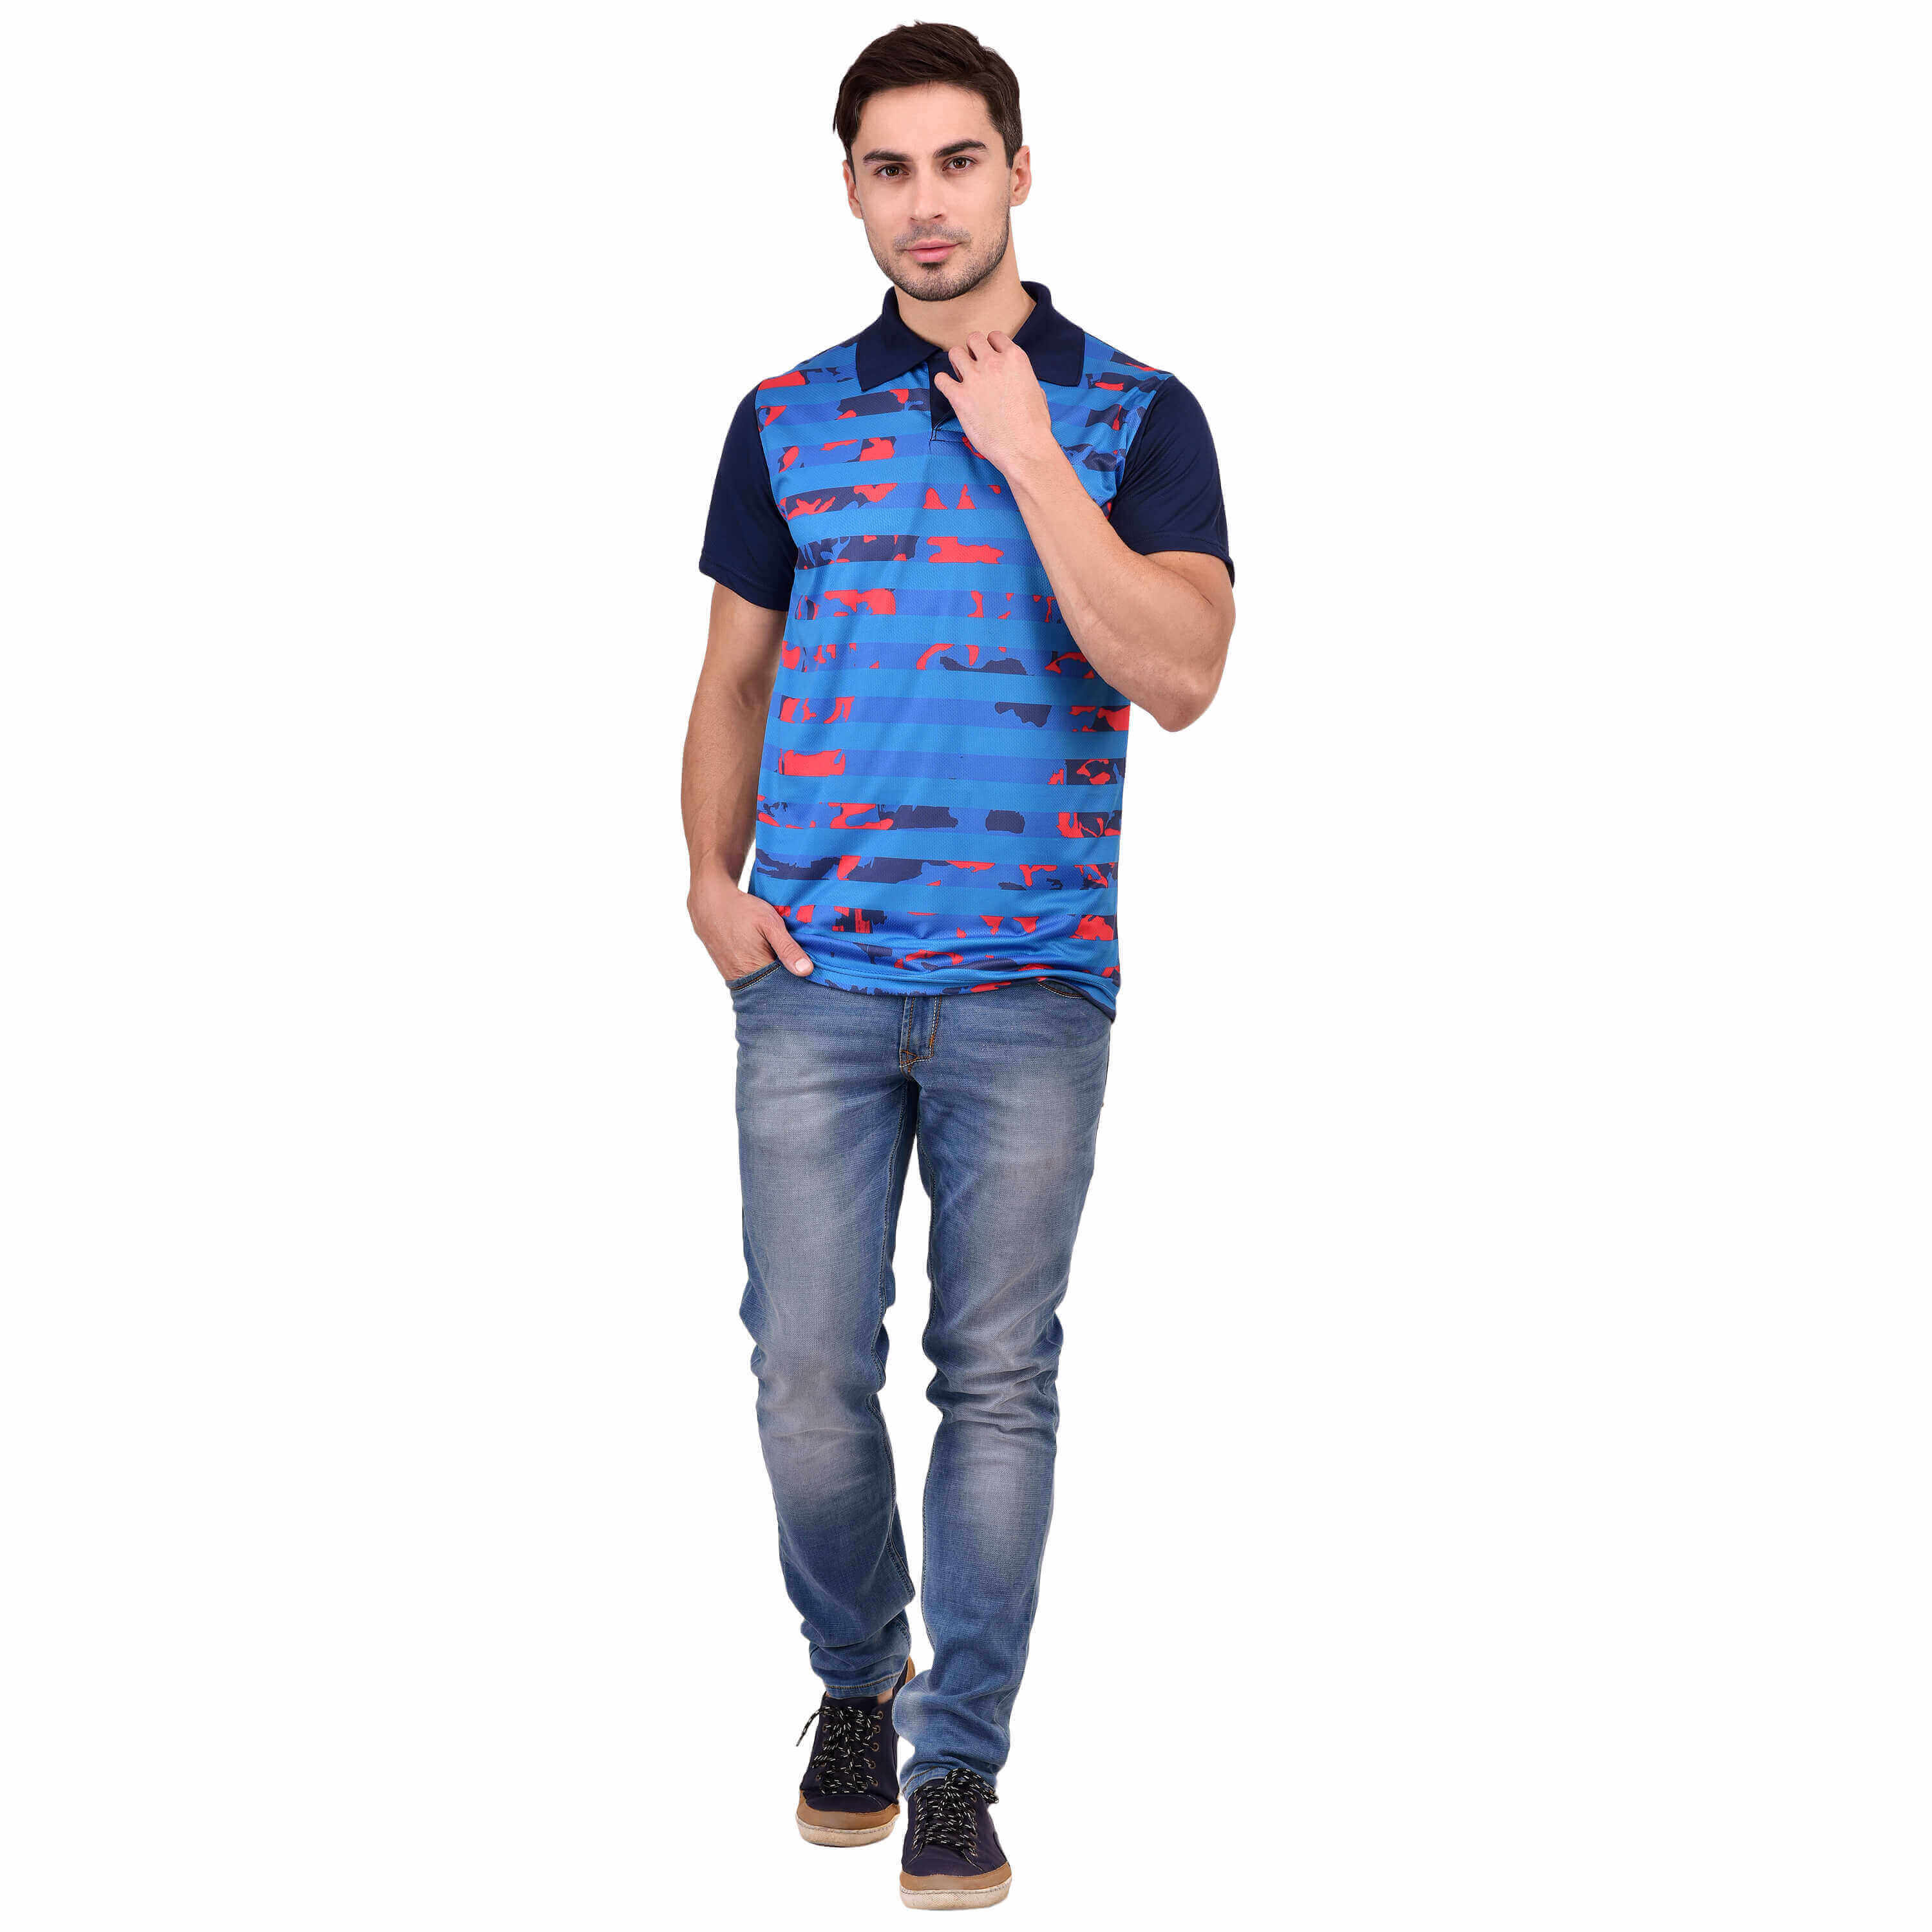 Cool T Shirts Manufacturers in Thiruvananthapuram